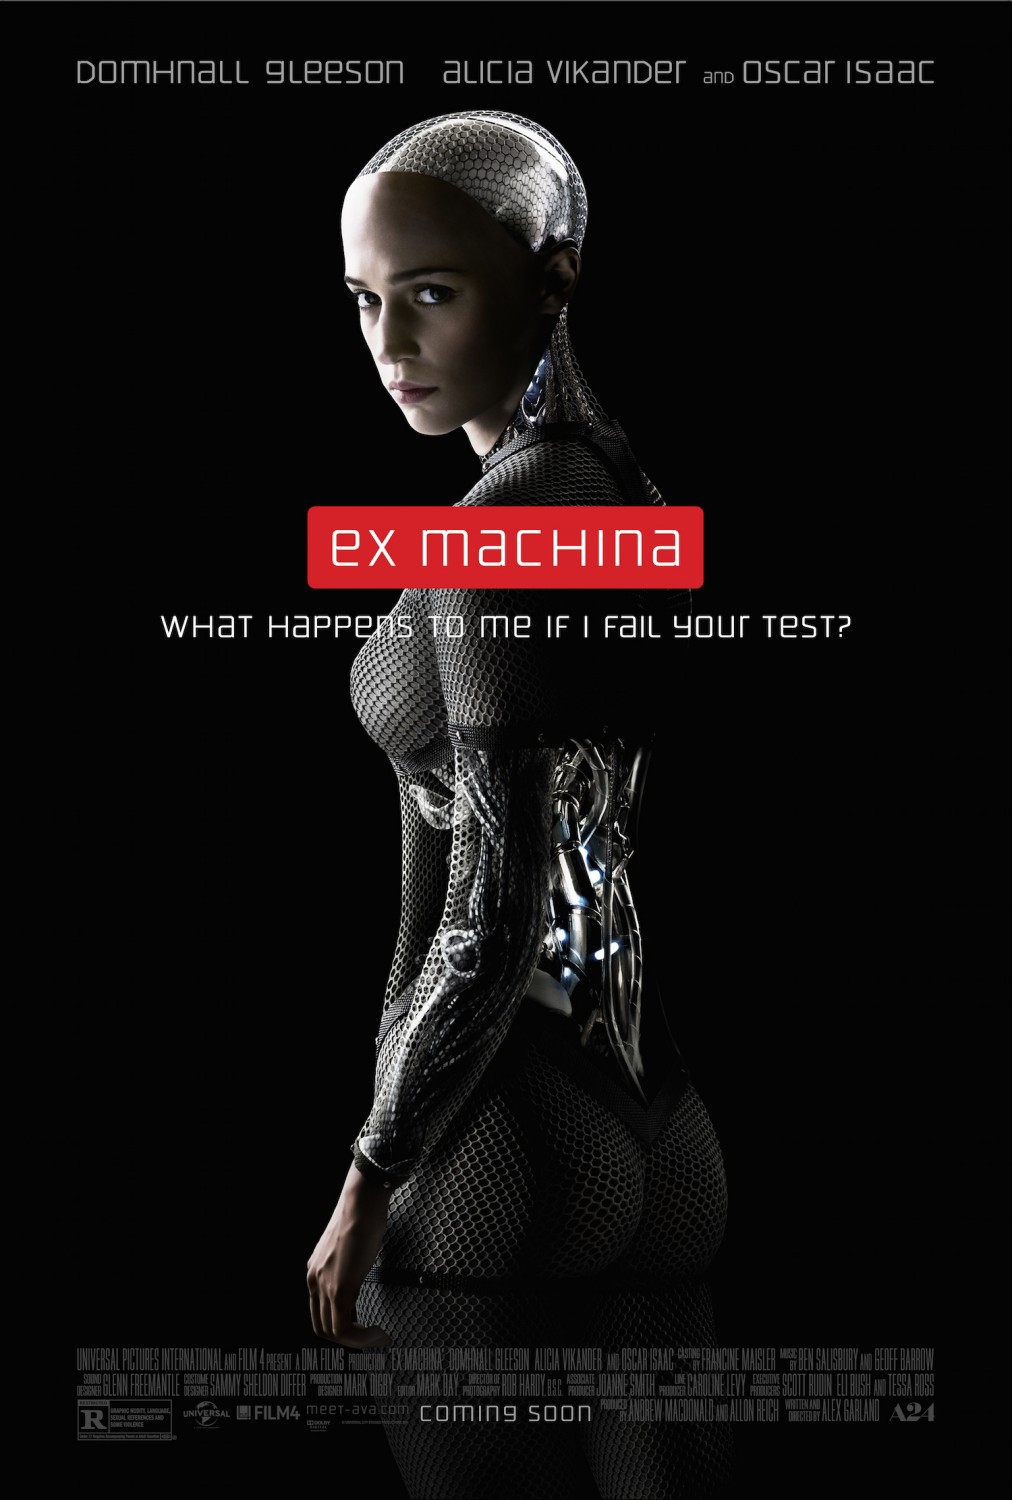 Image result for ex machina movie poster imdb""